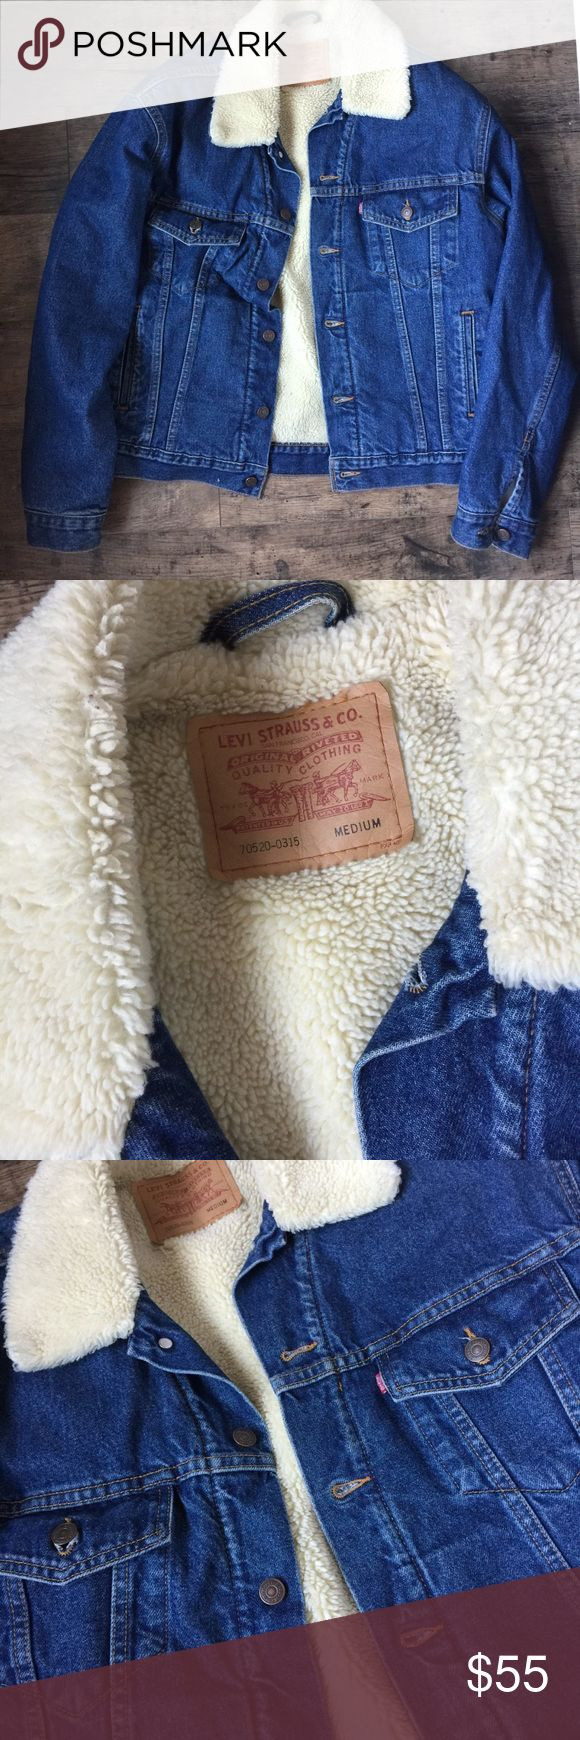 VINTAGE LEVI'S SHERPA DENIM JACKET Vinatge Levi's. Like new. Perfect condition. Men's size M but can be worn as an oversized jacket. Levi's Jackets & Coats